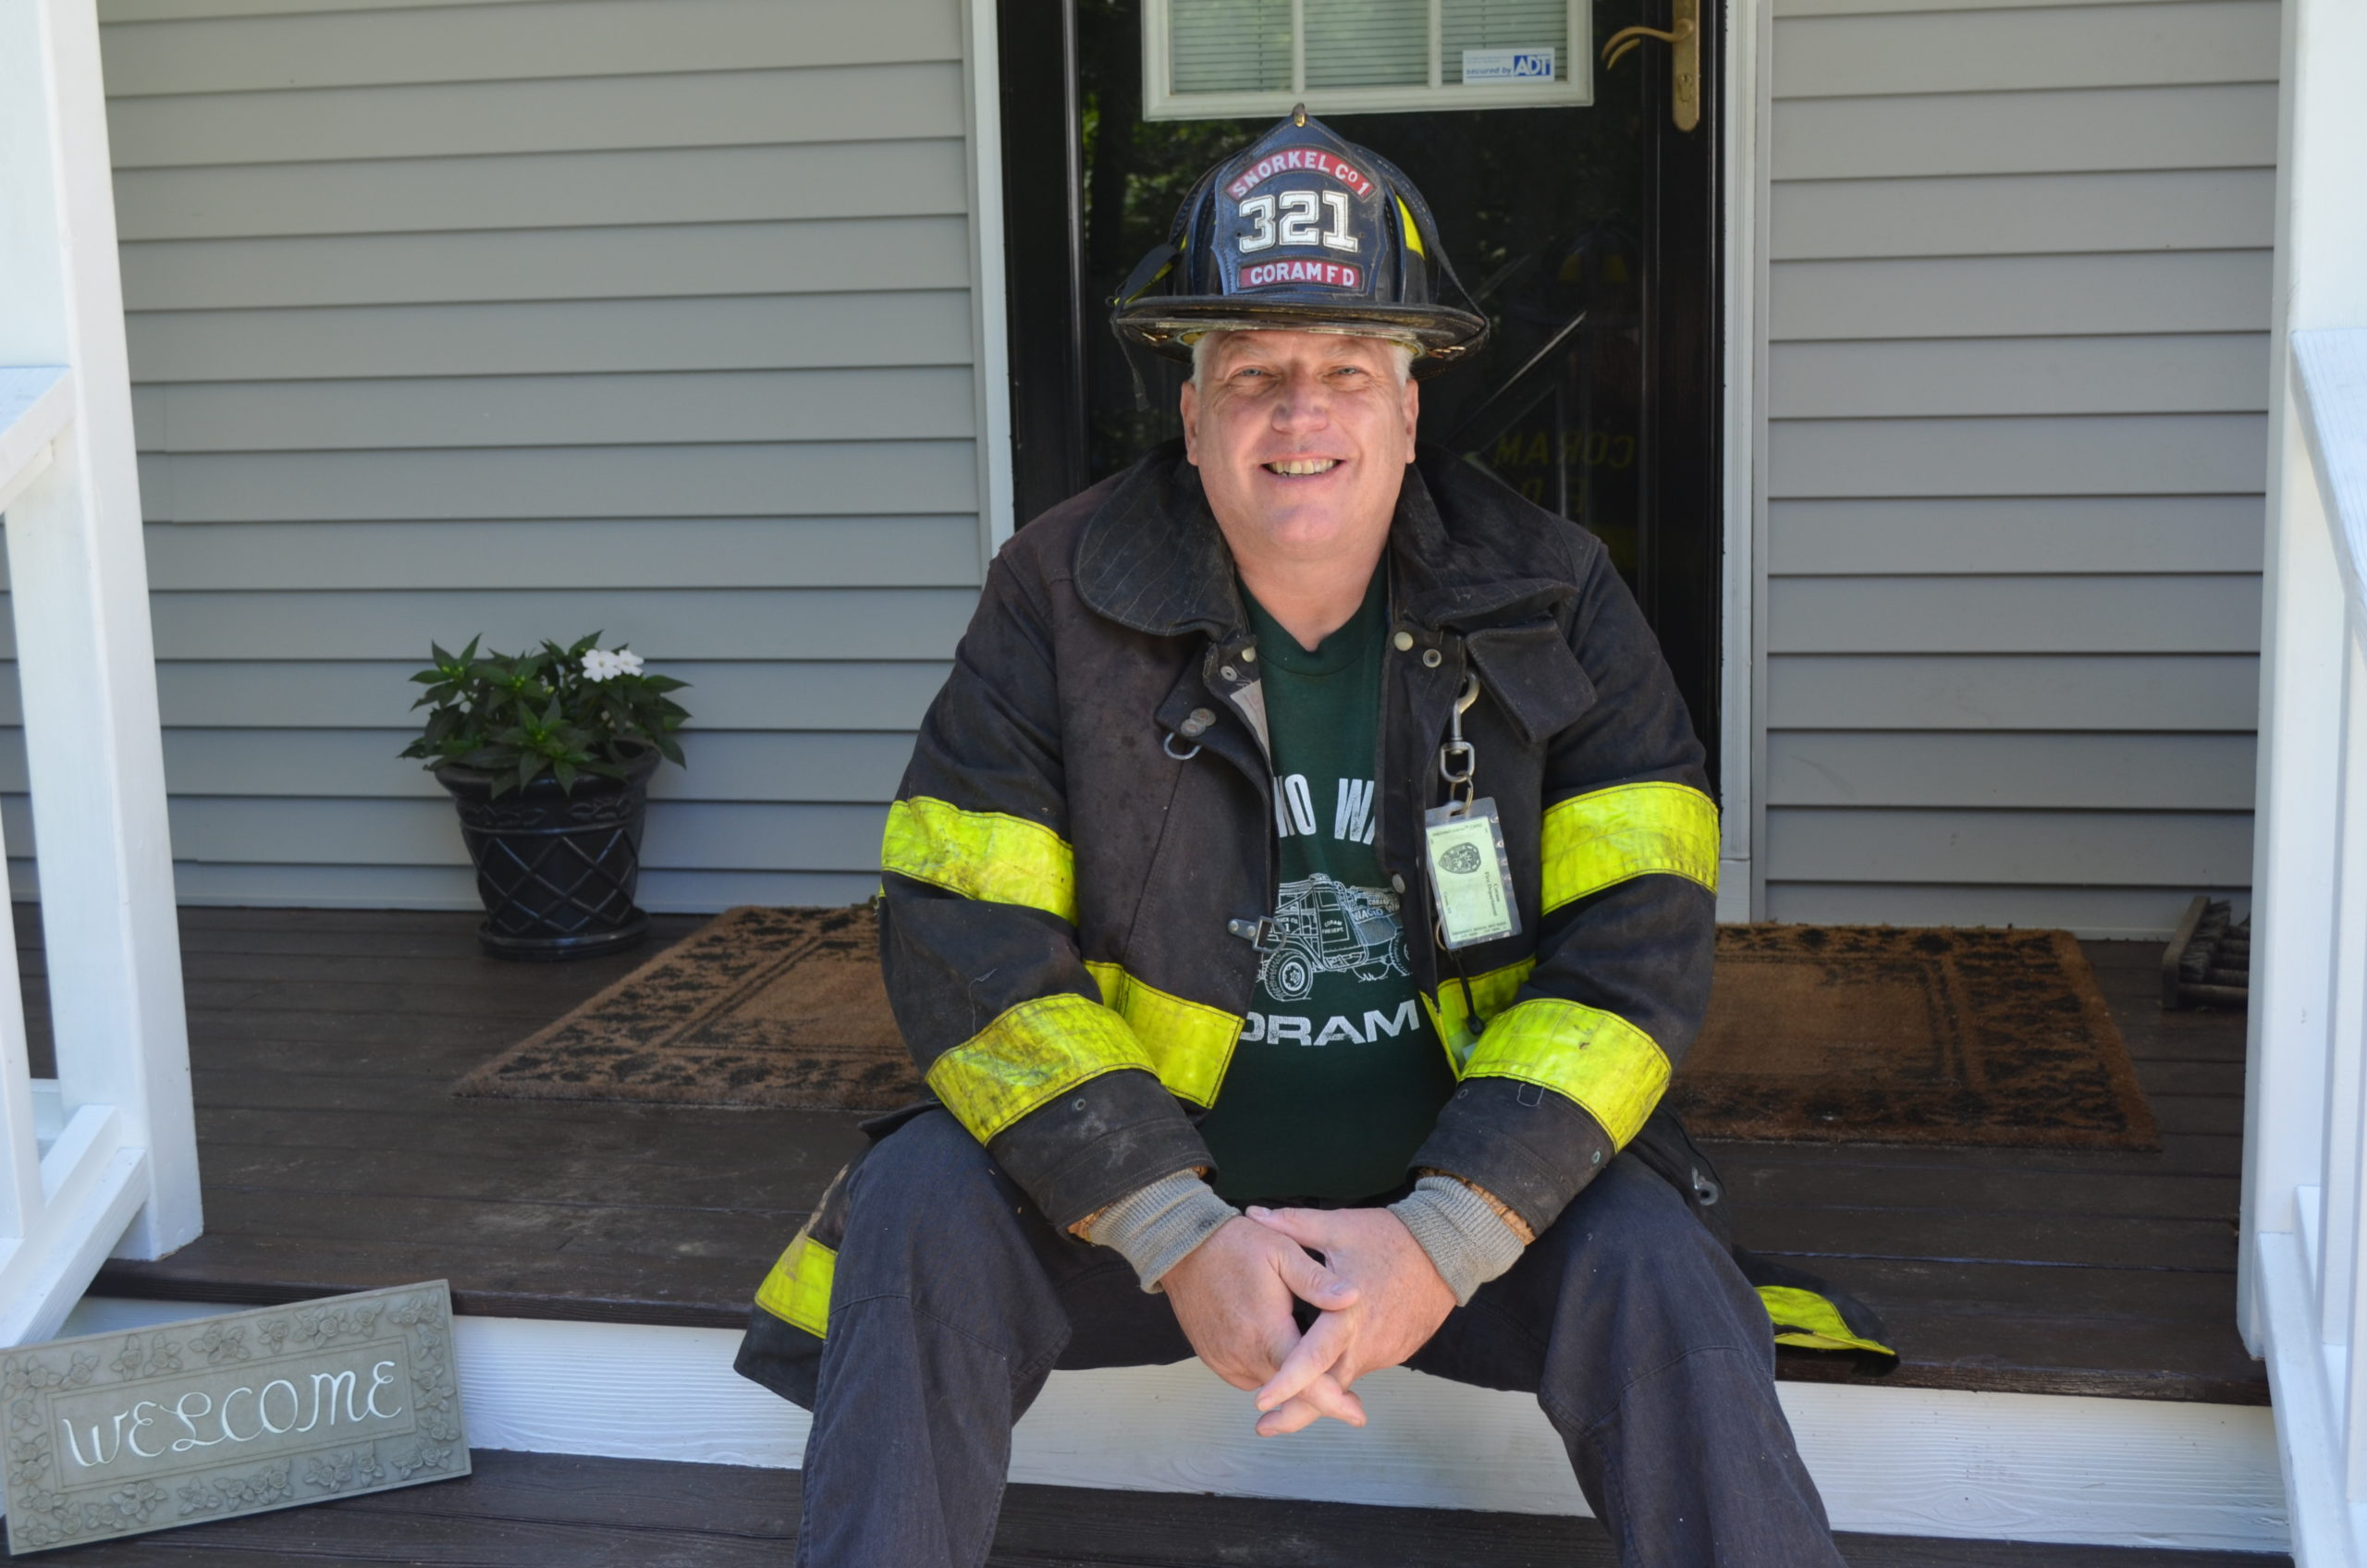 LJ Heming in his turnout coat and helmet on the front porch of his home in Hampton Bays.